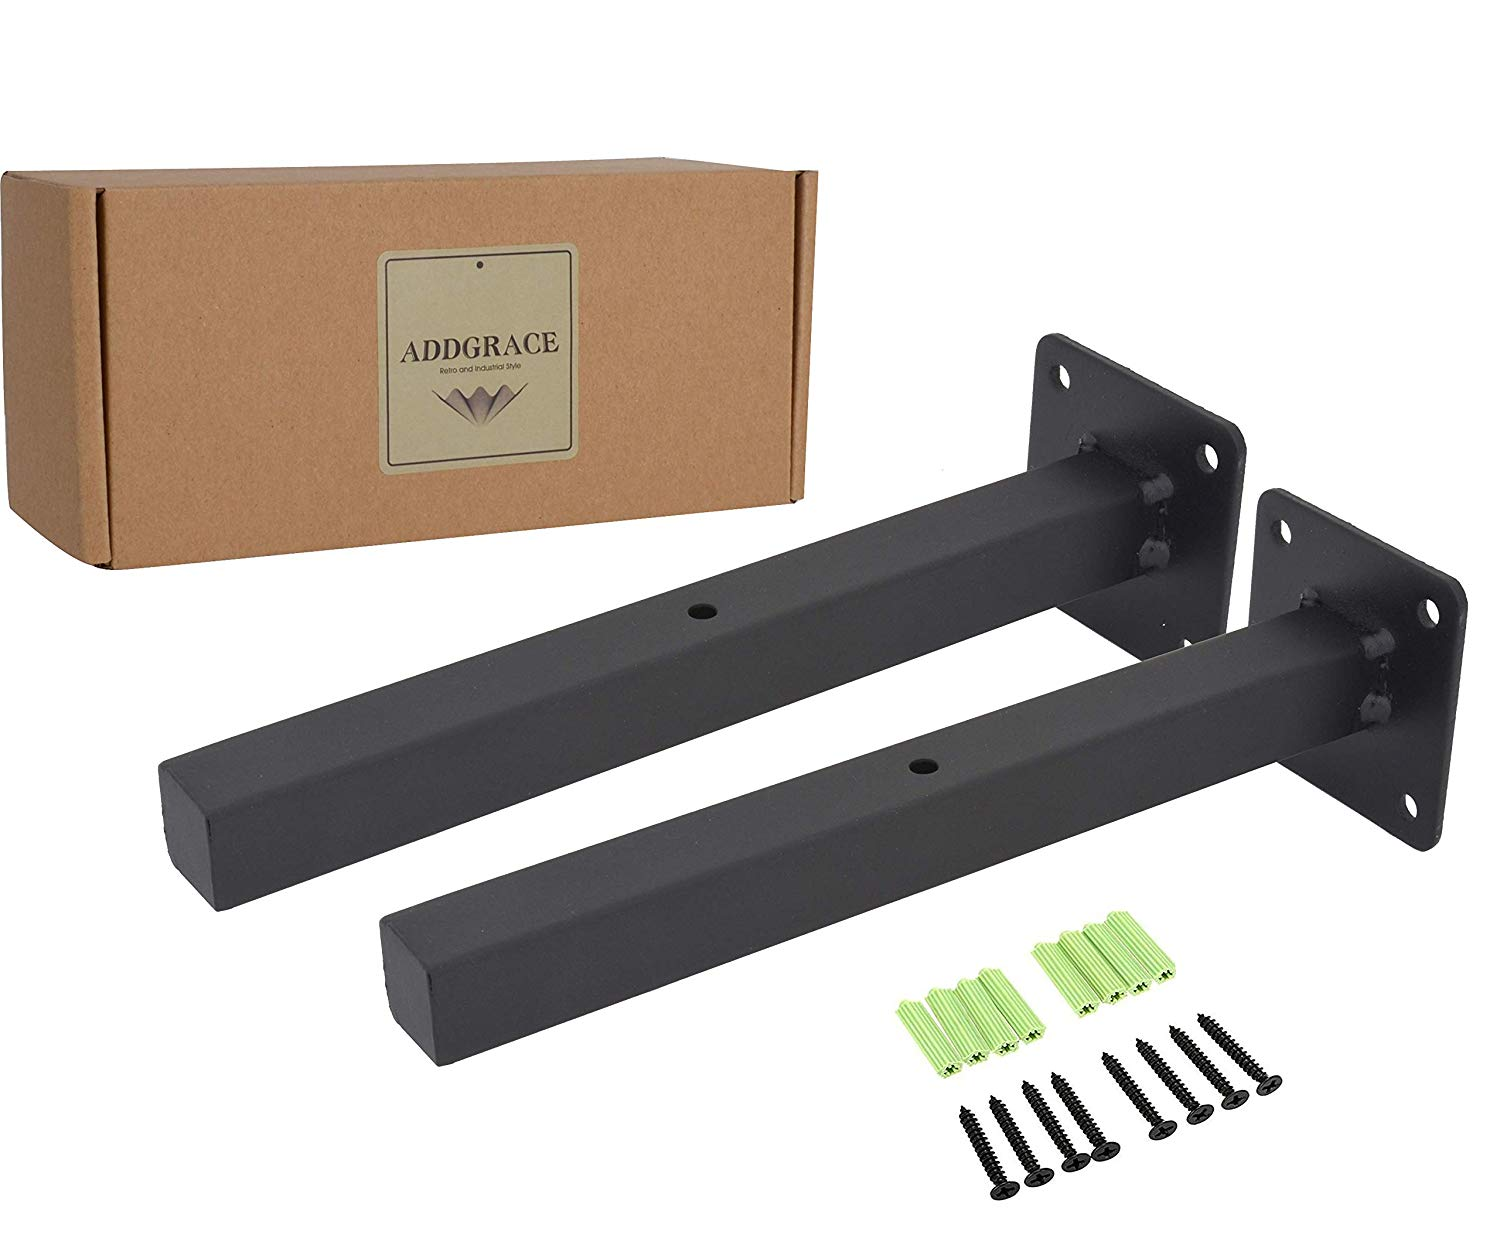 industrial addgrace black floating shelf brackets retro wall mounted supports includes screws anchors square inch home inexpensive desks for office dark wood living room furniture